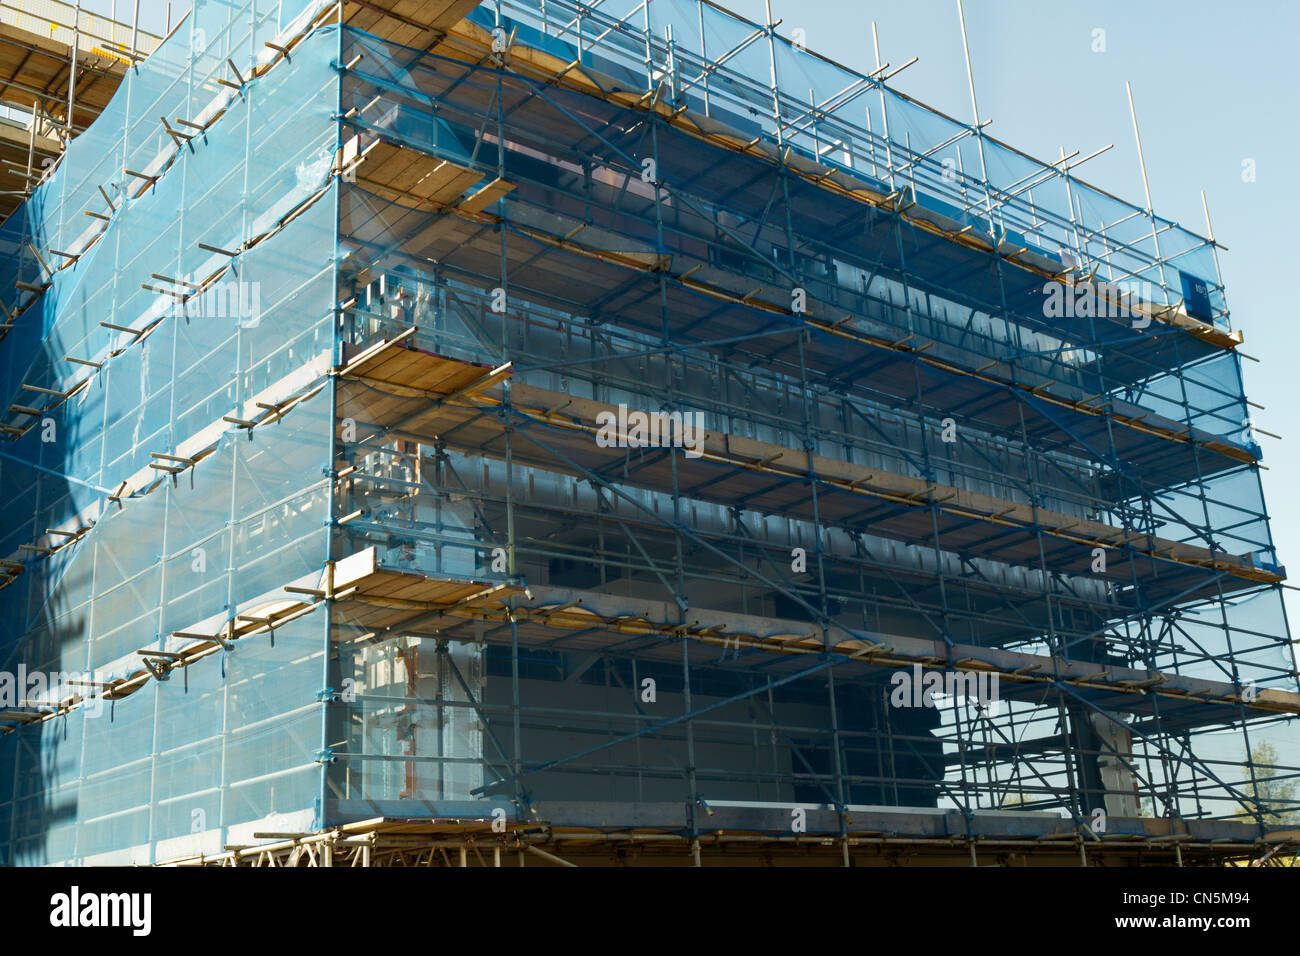 Scaffolding with protective netting on a construction site building - Stock Image